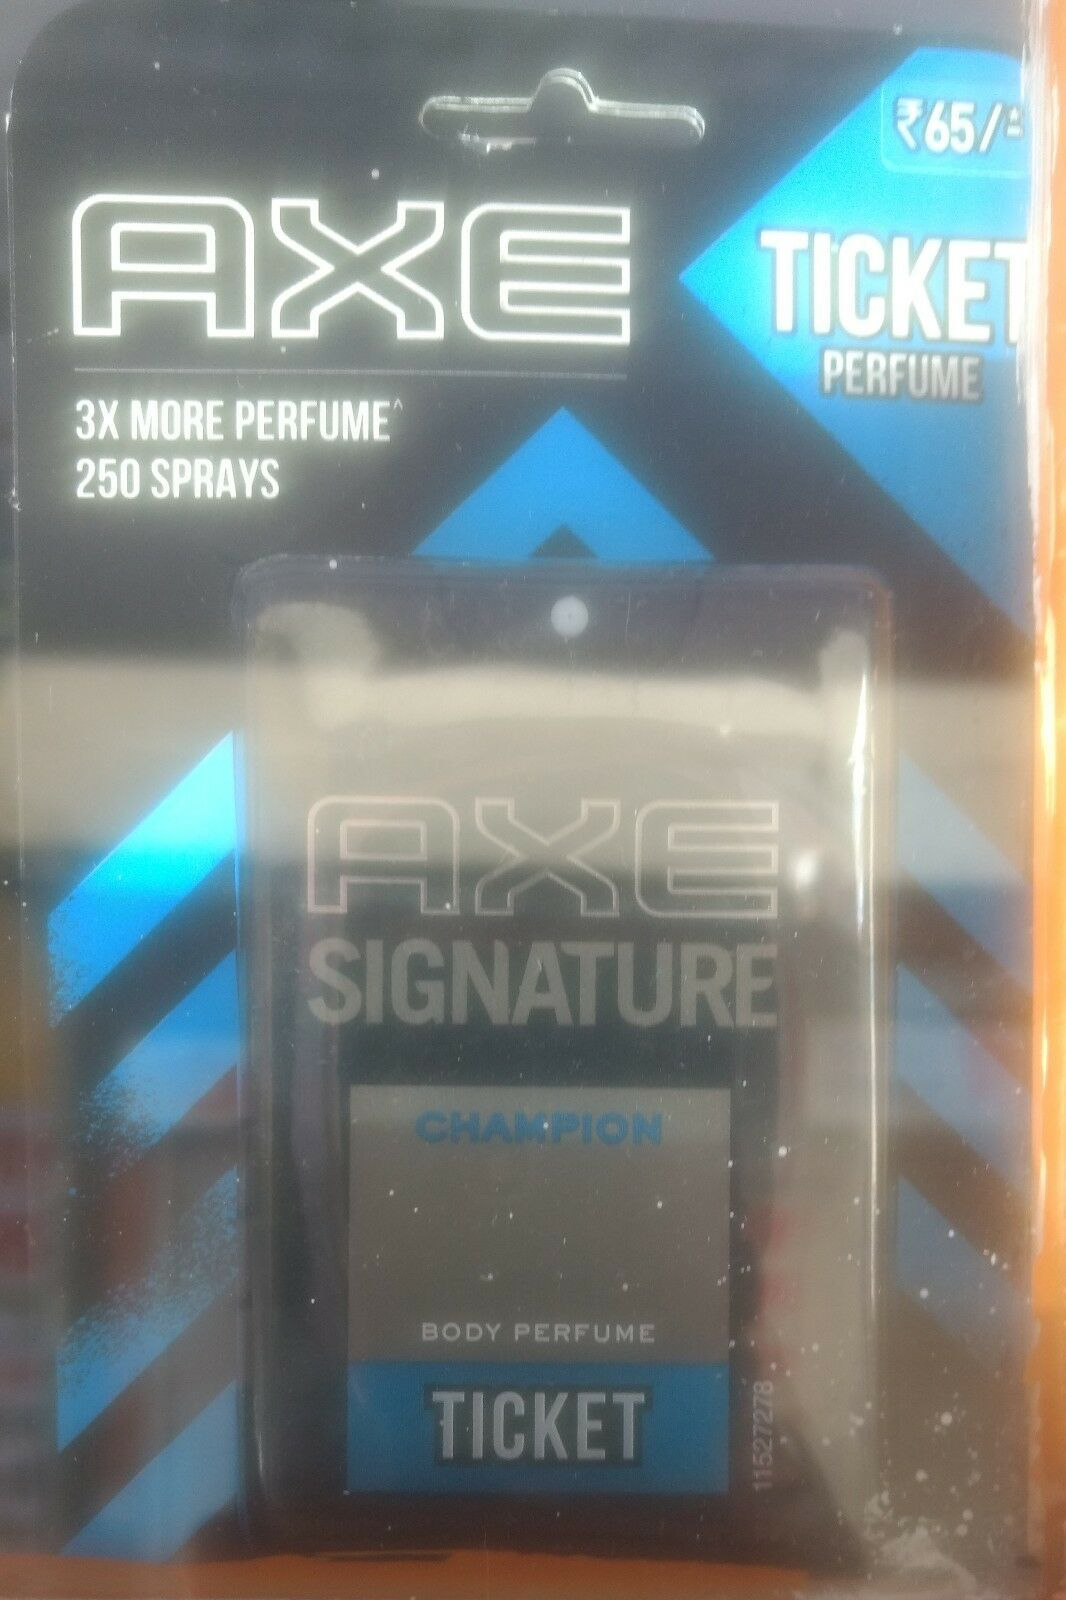 Axe signature champion ticket body perfume Pocket Perfume,17 Ml 250 spray fs - $5.43